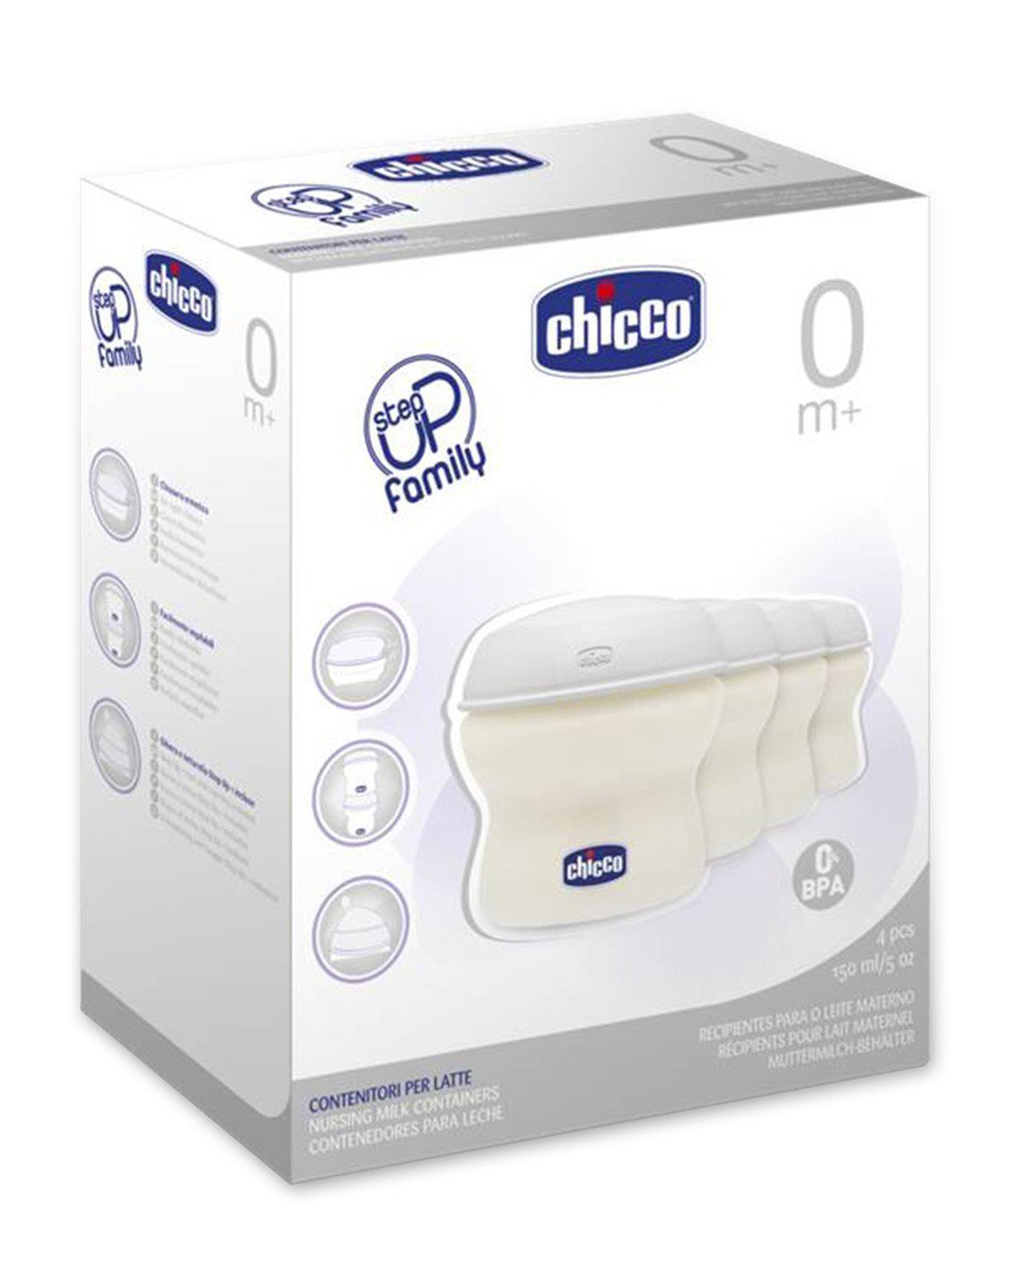 Contenitore latte step up new - Chicco